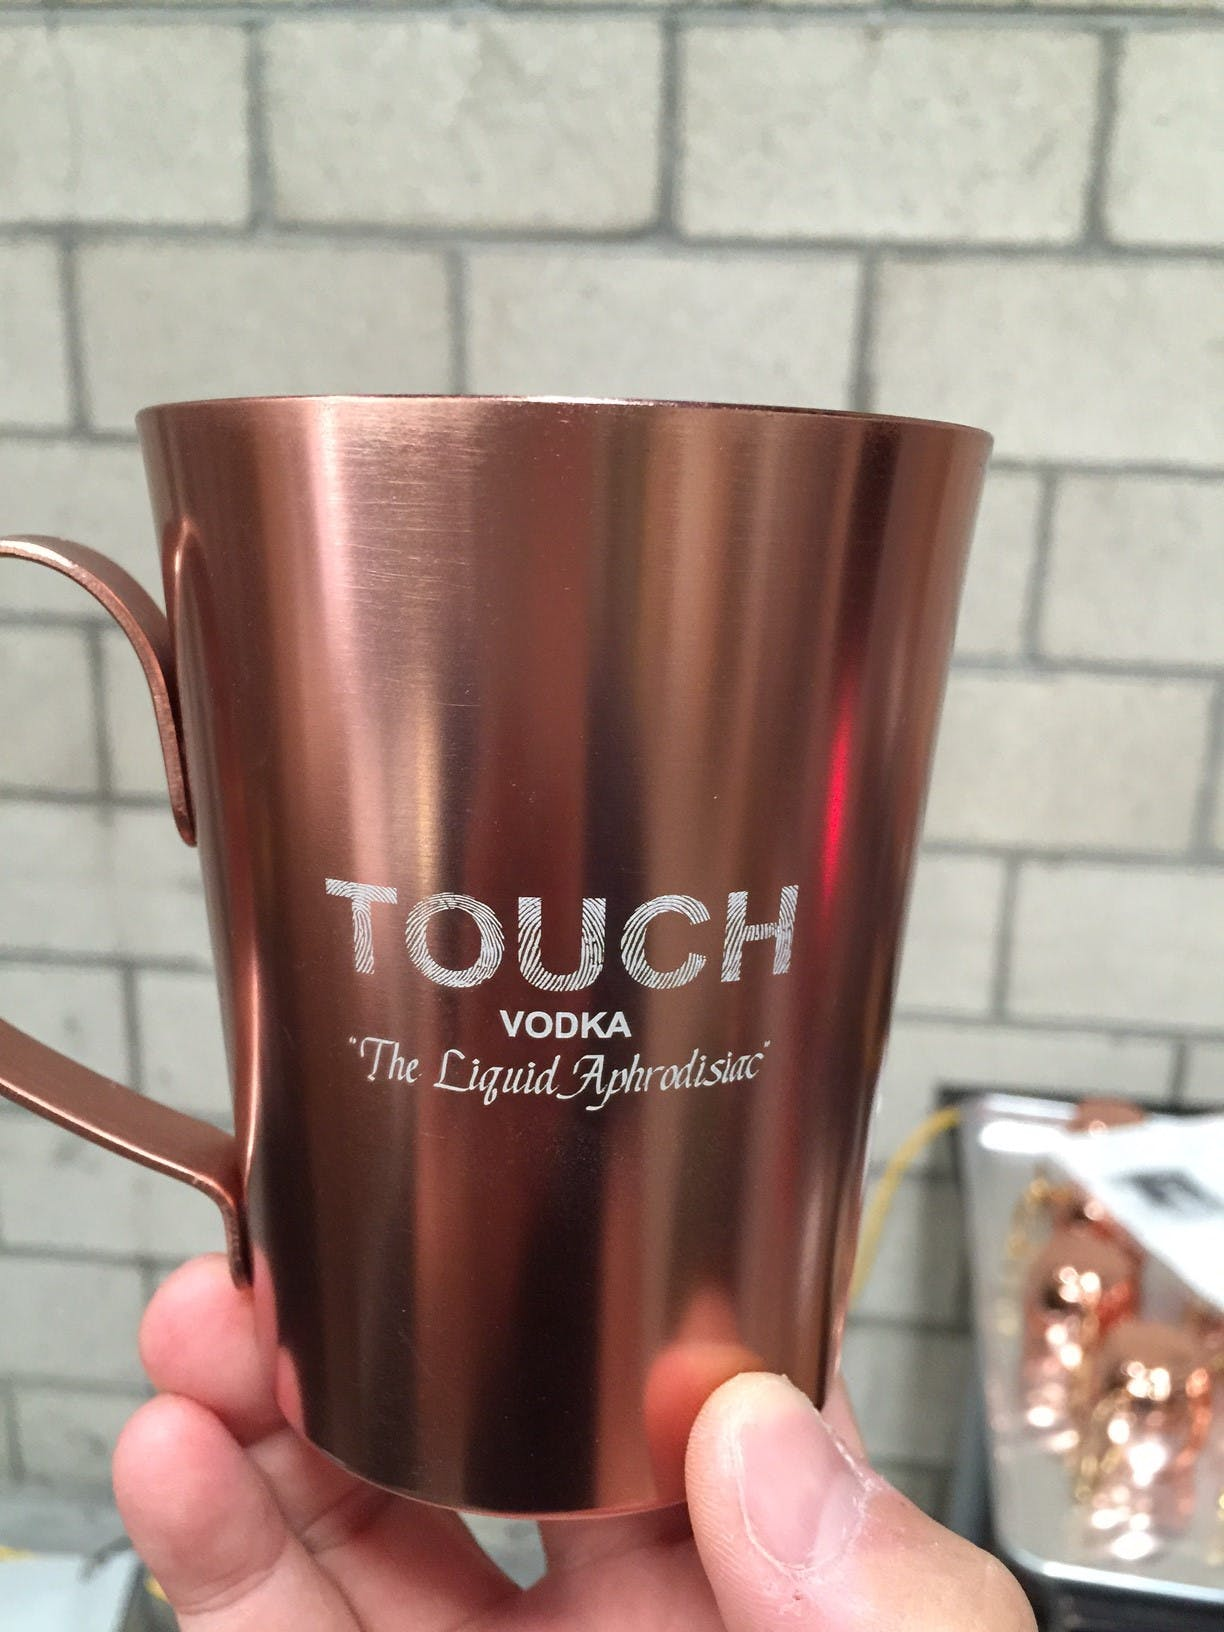 14 oz Rivet Laser Engraved - Moscow Mule Copper Mugs Decorated - Screen Printed or Laser Engraved - Minimum 60/72 pcs. - sold by Circle Star Pro